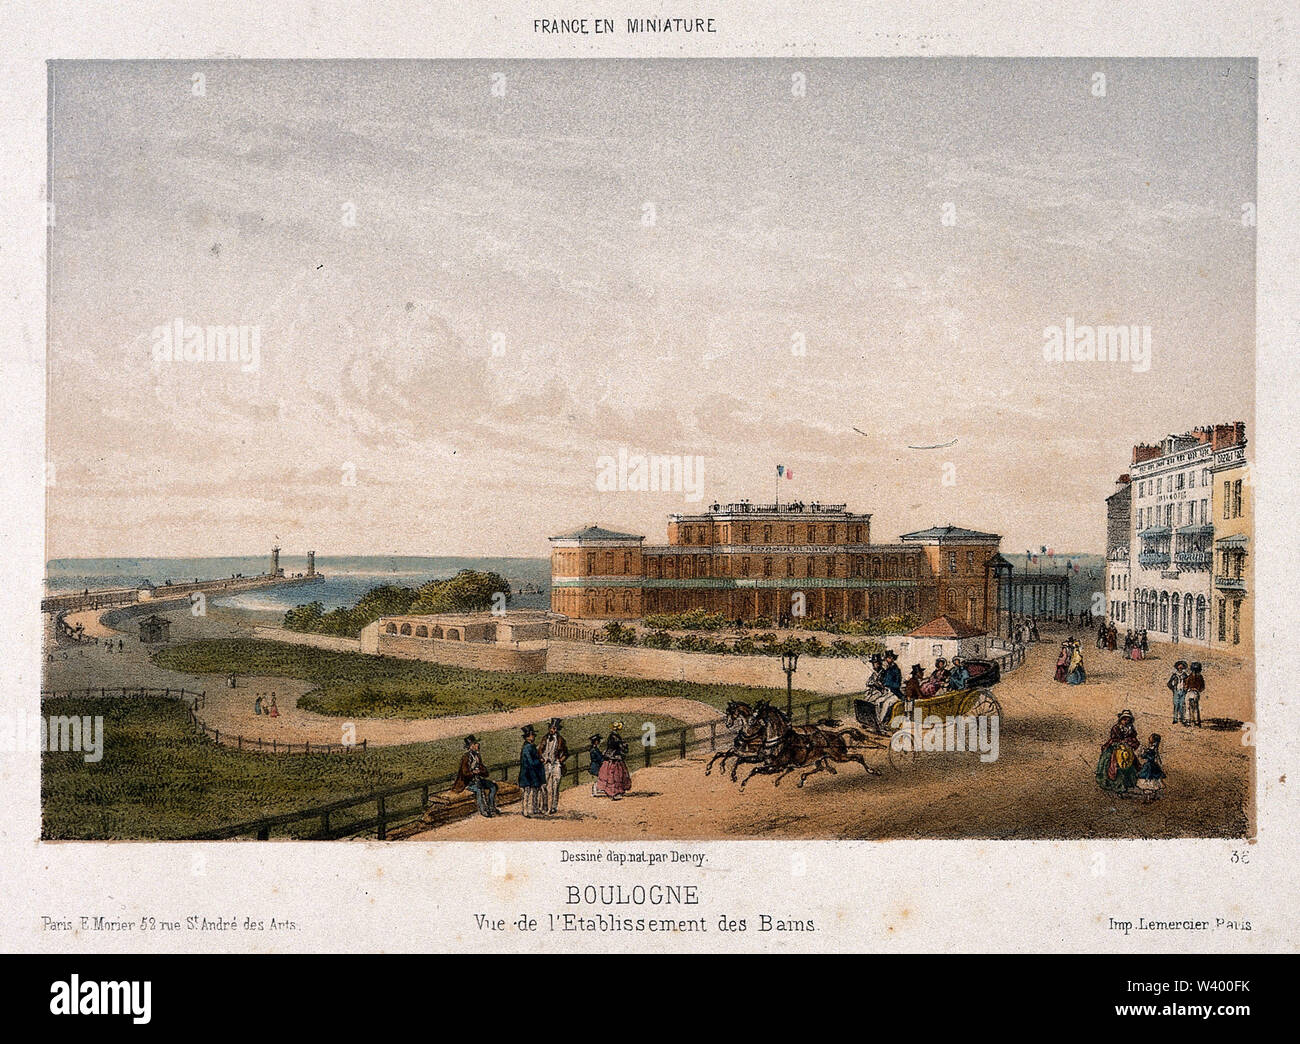 The busy street in front of the Bath house, Boulogne, France. Coloured lithograph after Deroy. - Stock Image